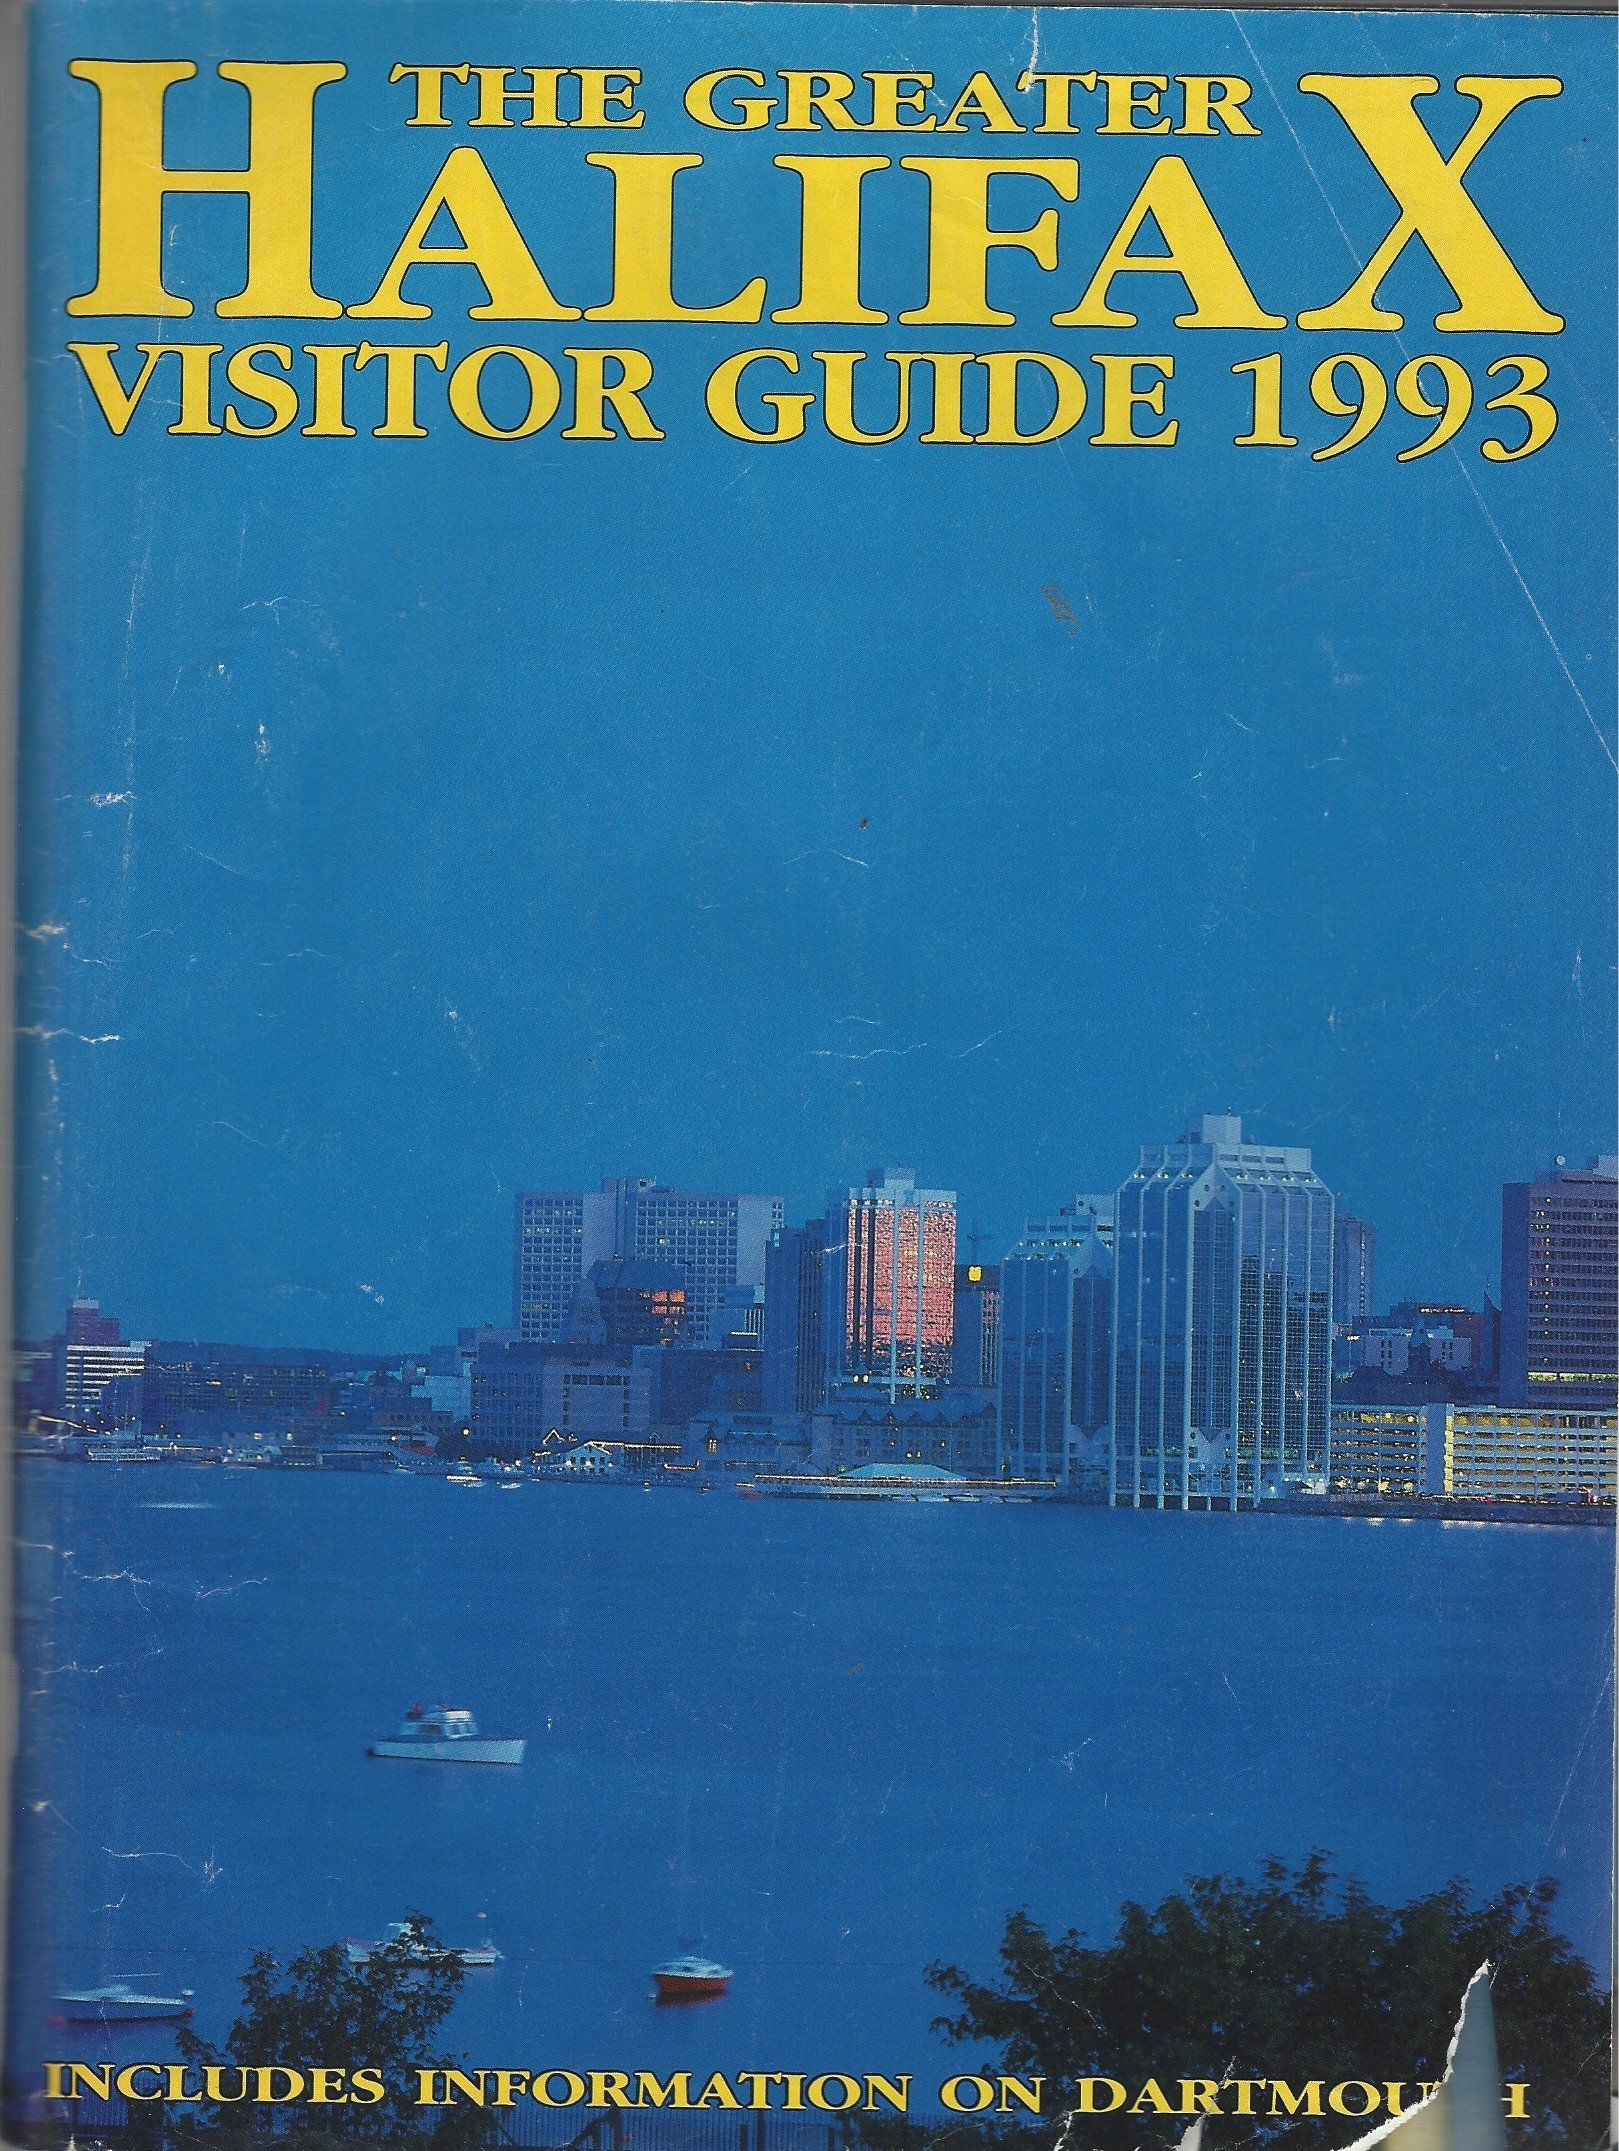 The Greater Halifax Visitor Guide 1993, Vol  47, N° 6, Includes